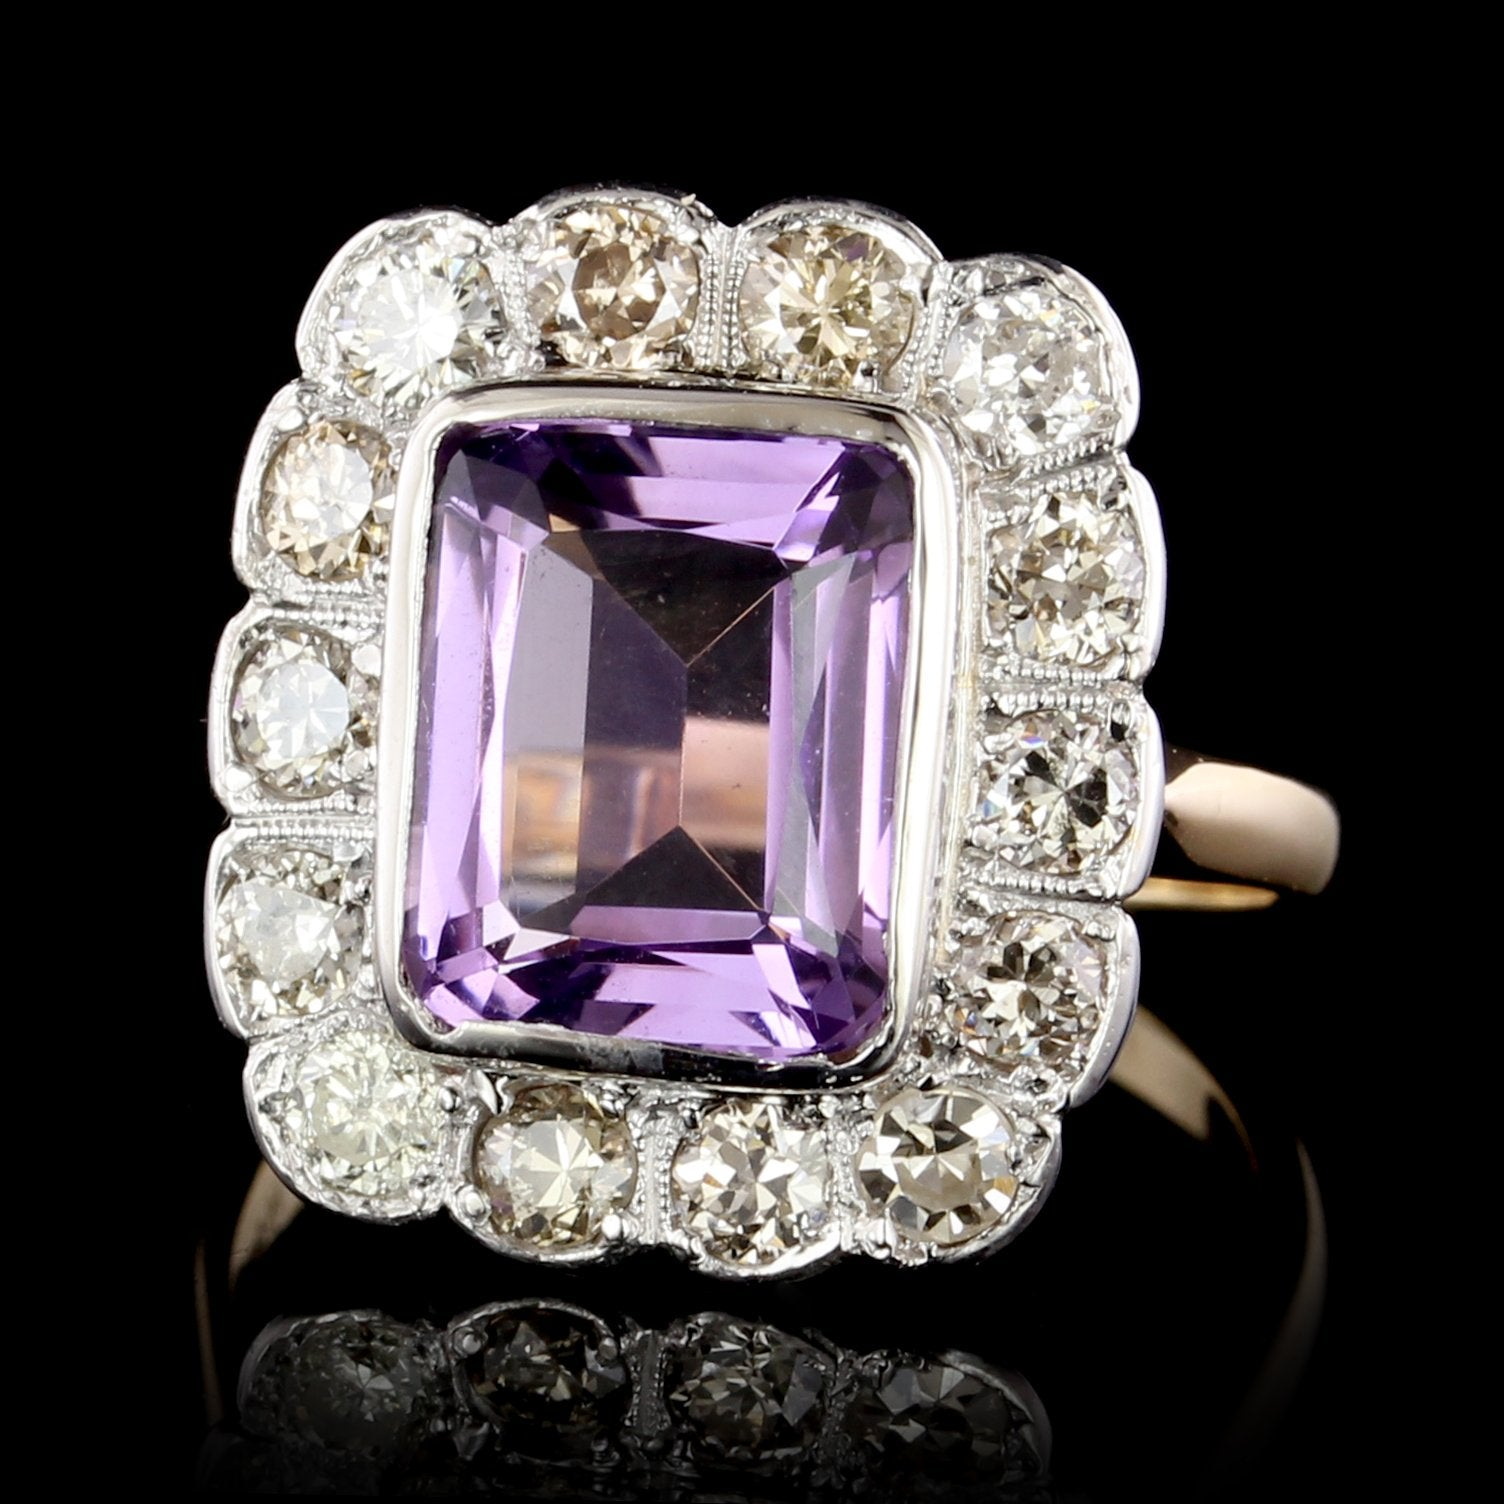 Vintage 14K Two-tone Gold Amethyst and Diamond Ring